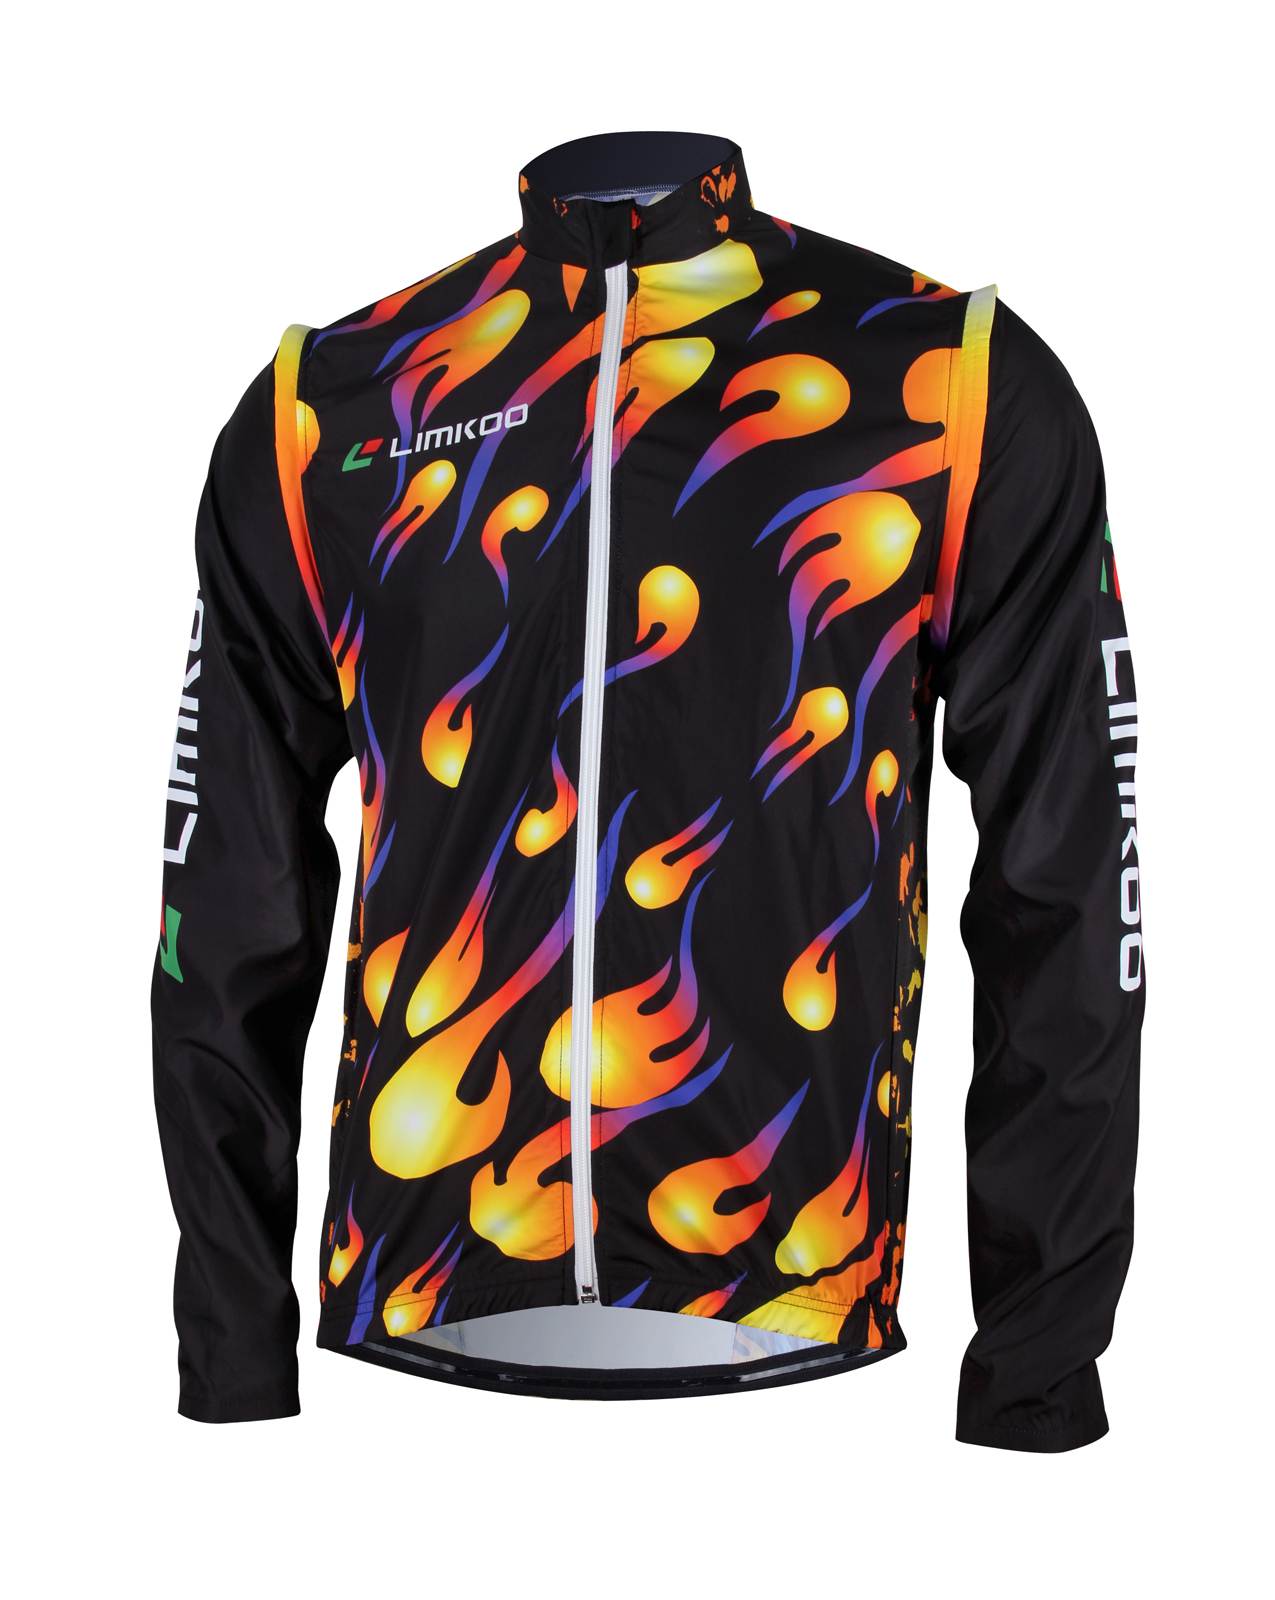 COOL SHELL Convertible Cycling Wind Jacket